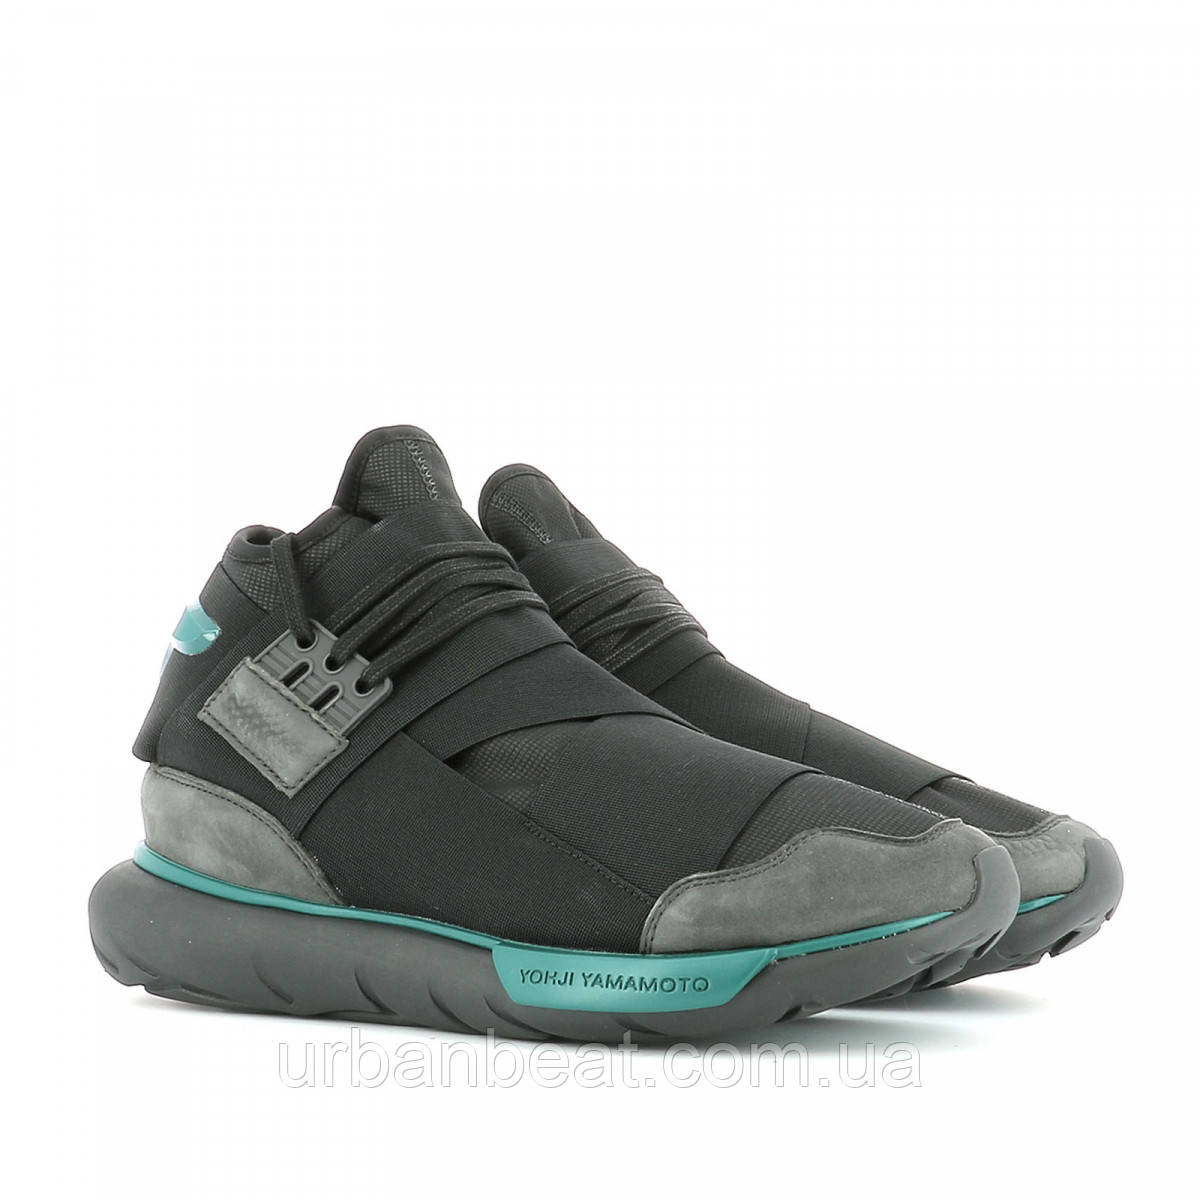 Мужские кроссовки Adidas Y-3 Qasa High Grey Blue РЕПЛИКА ААА+ - Urban 176666c1a